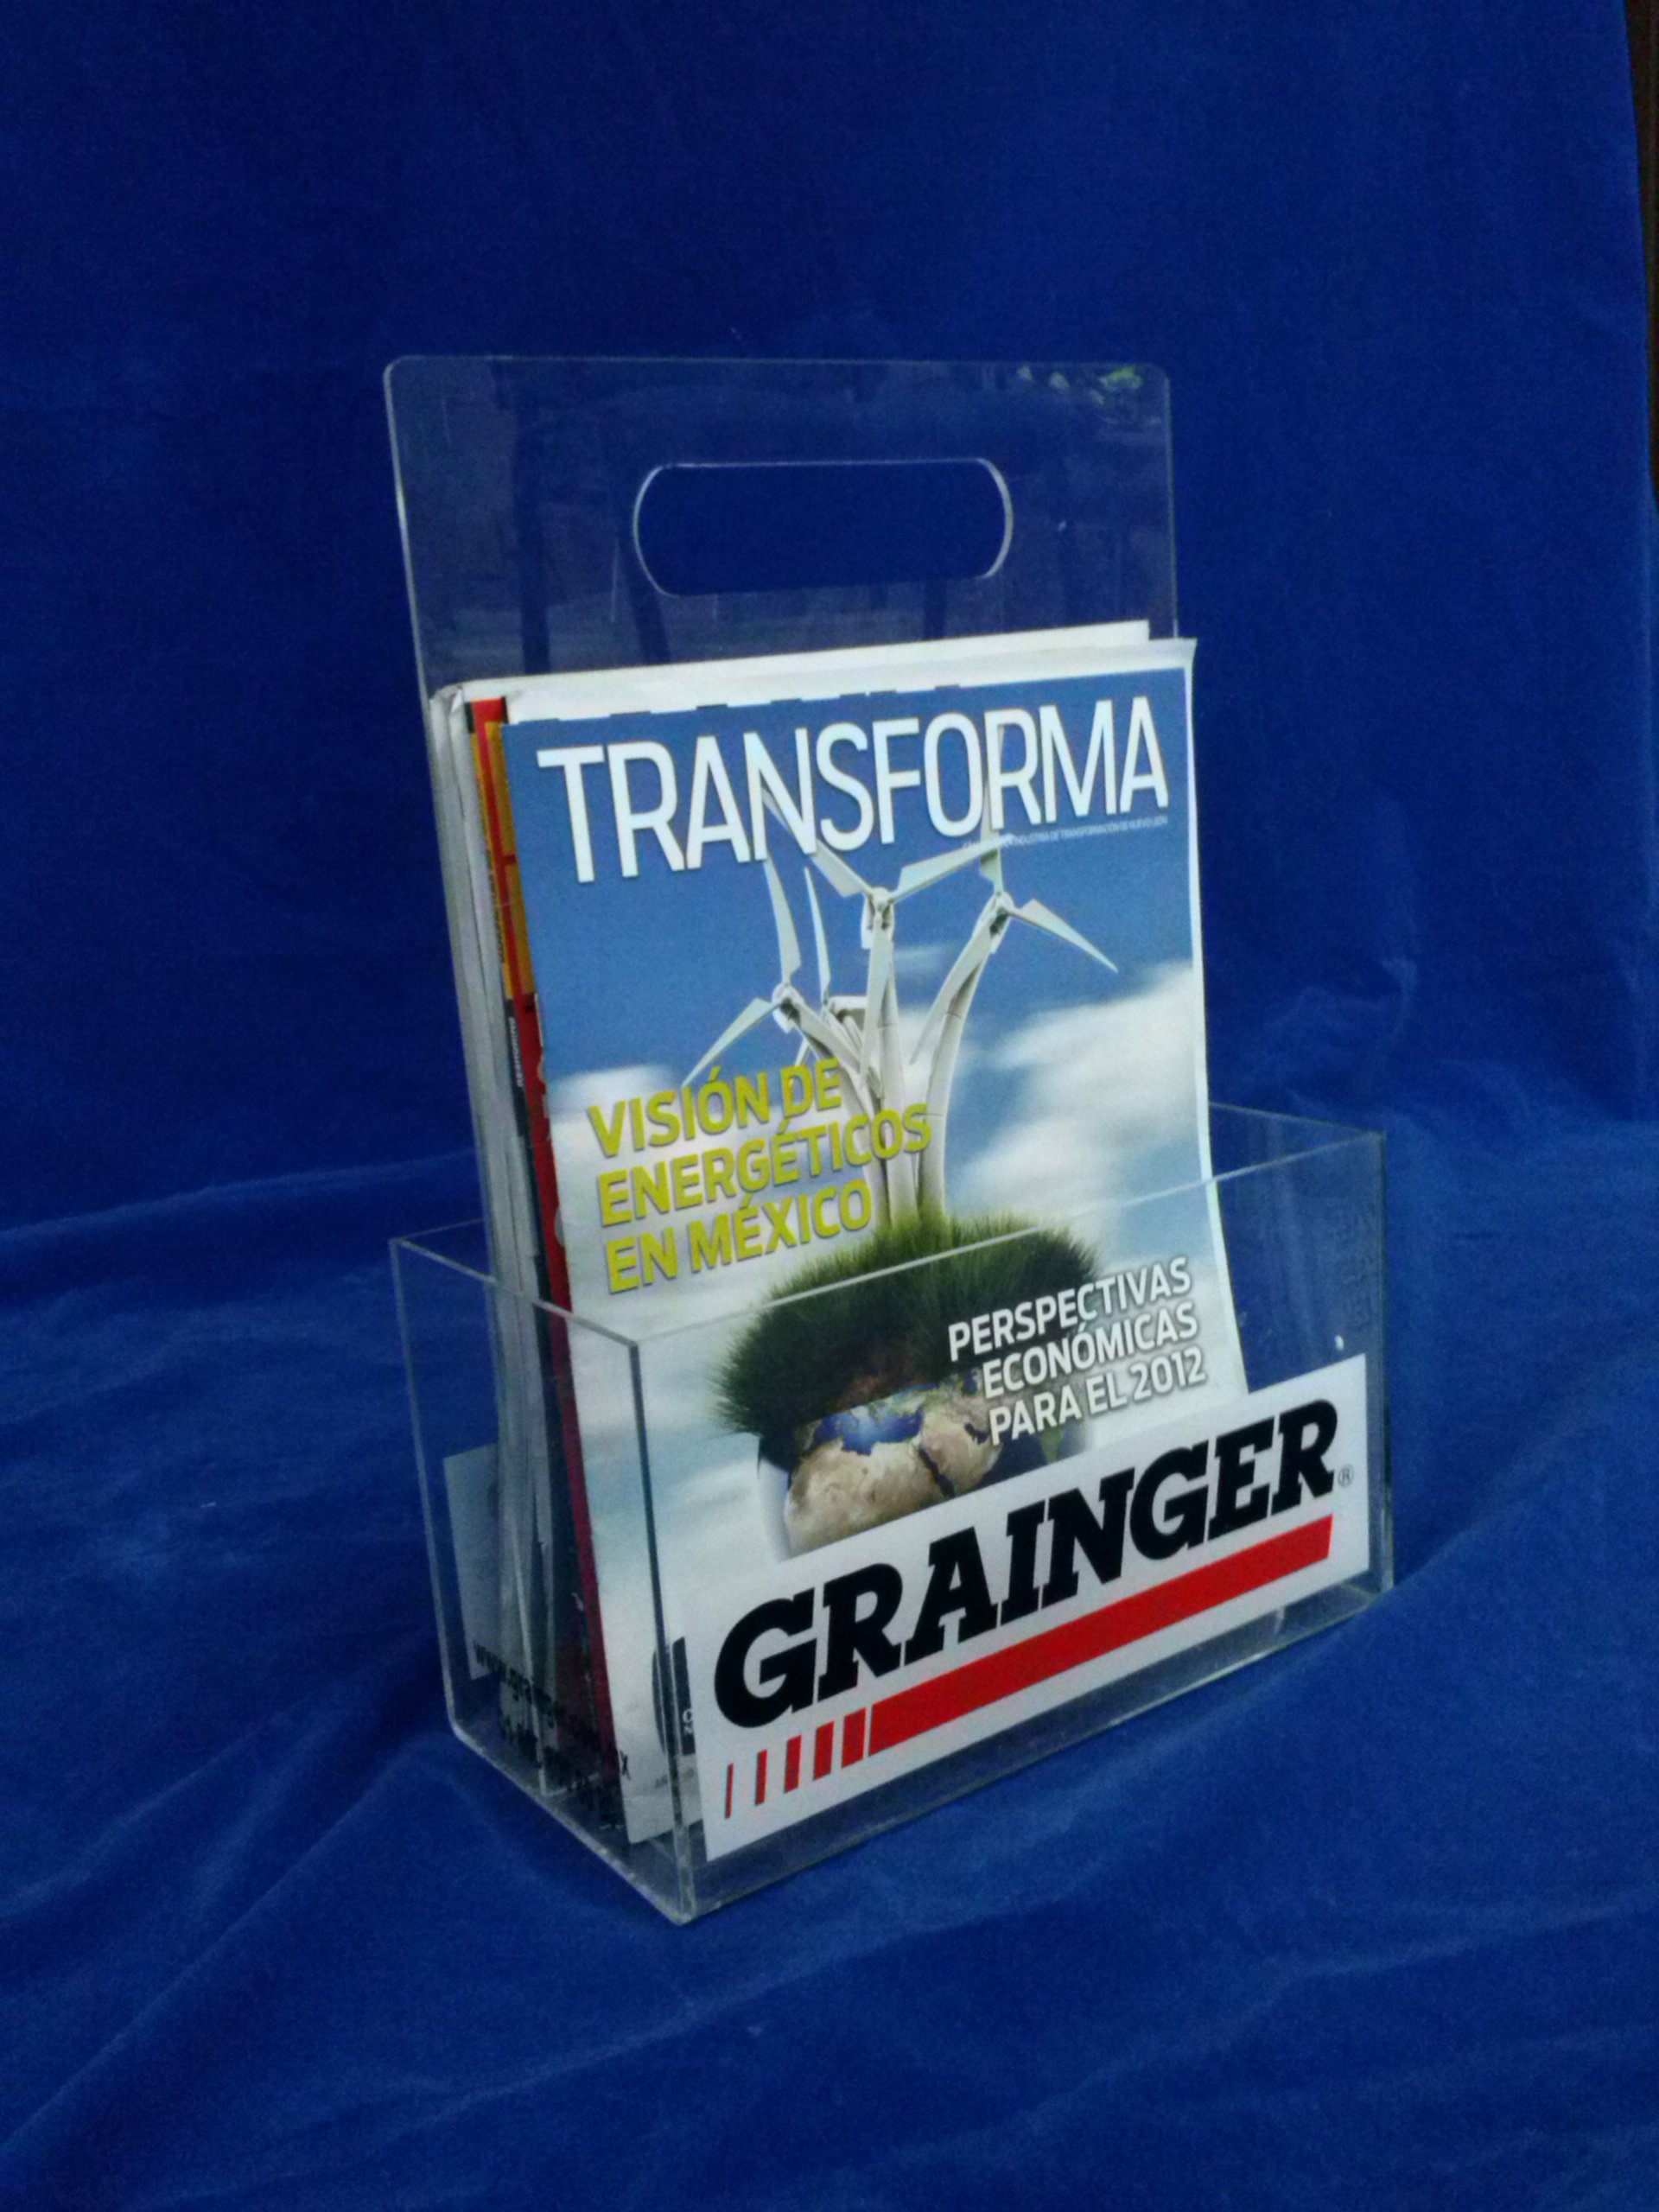 Porta Revistas Grainger2